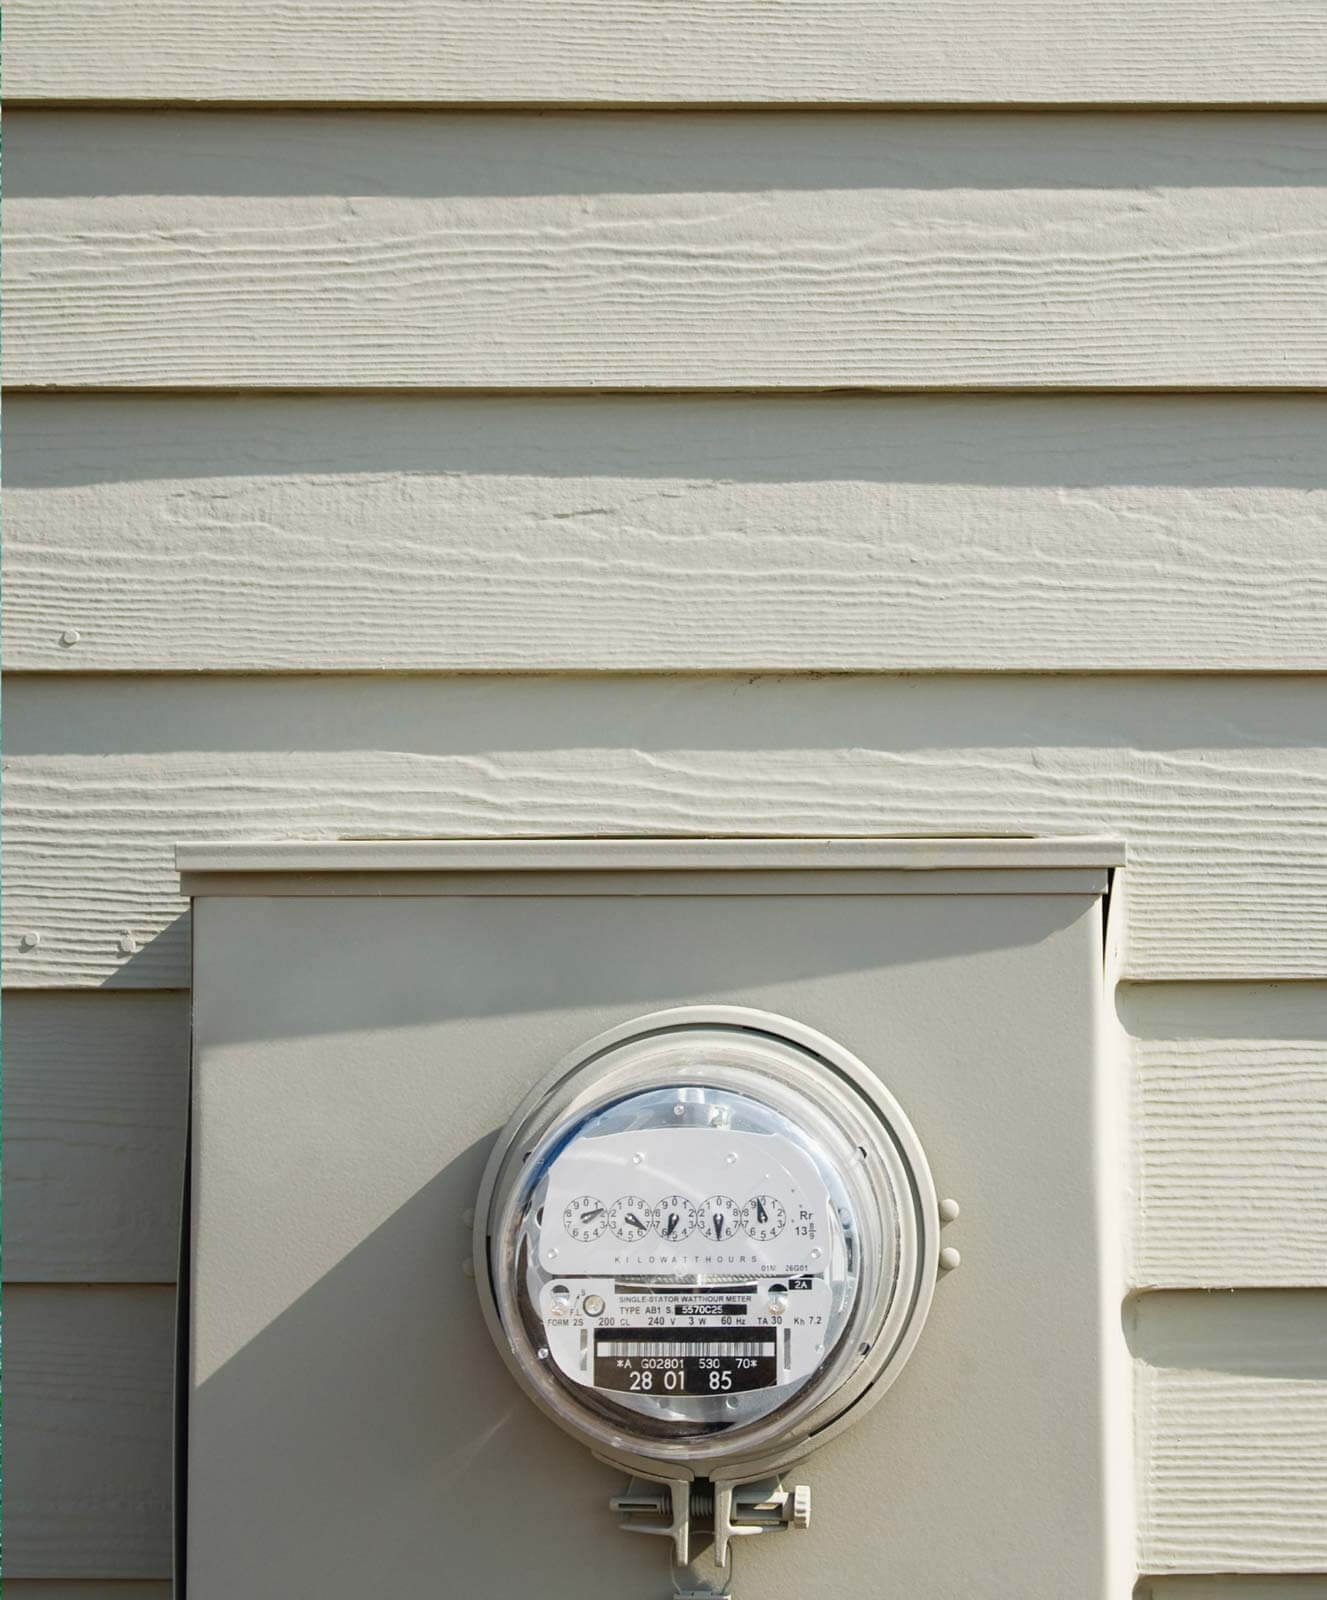 Outdoor utility meter to monitor energy usage